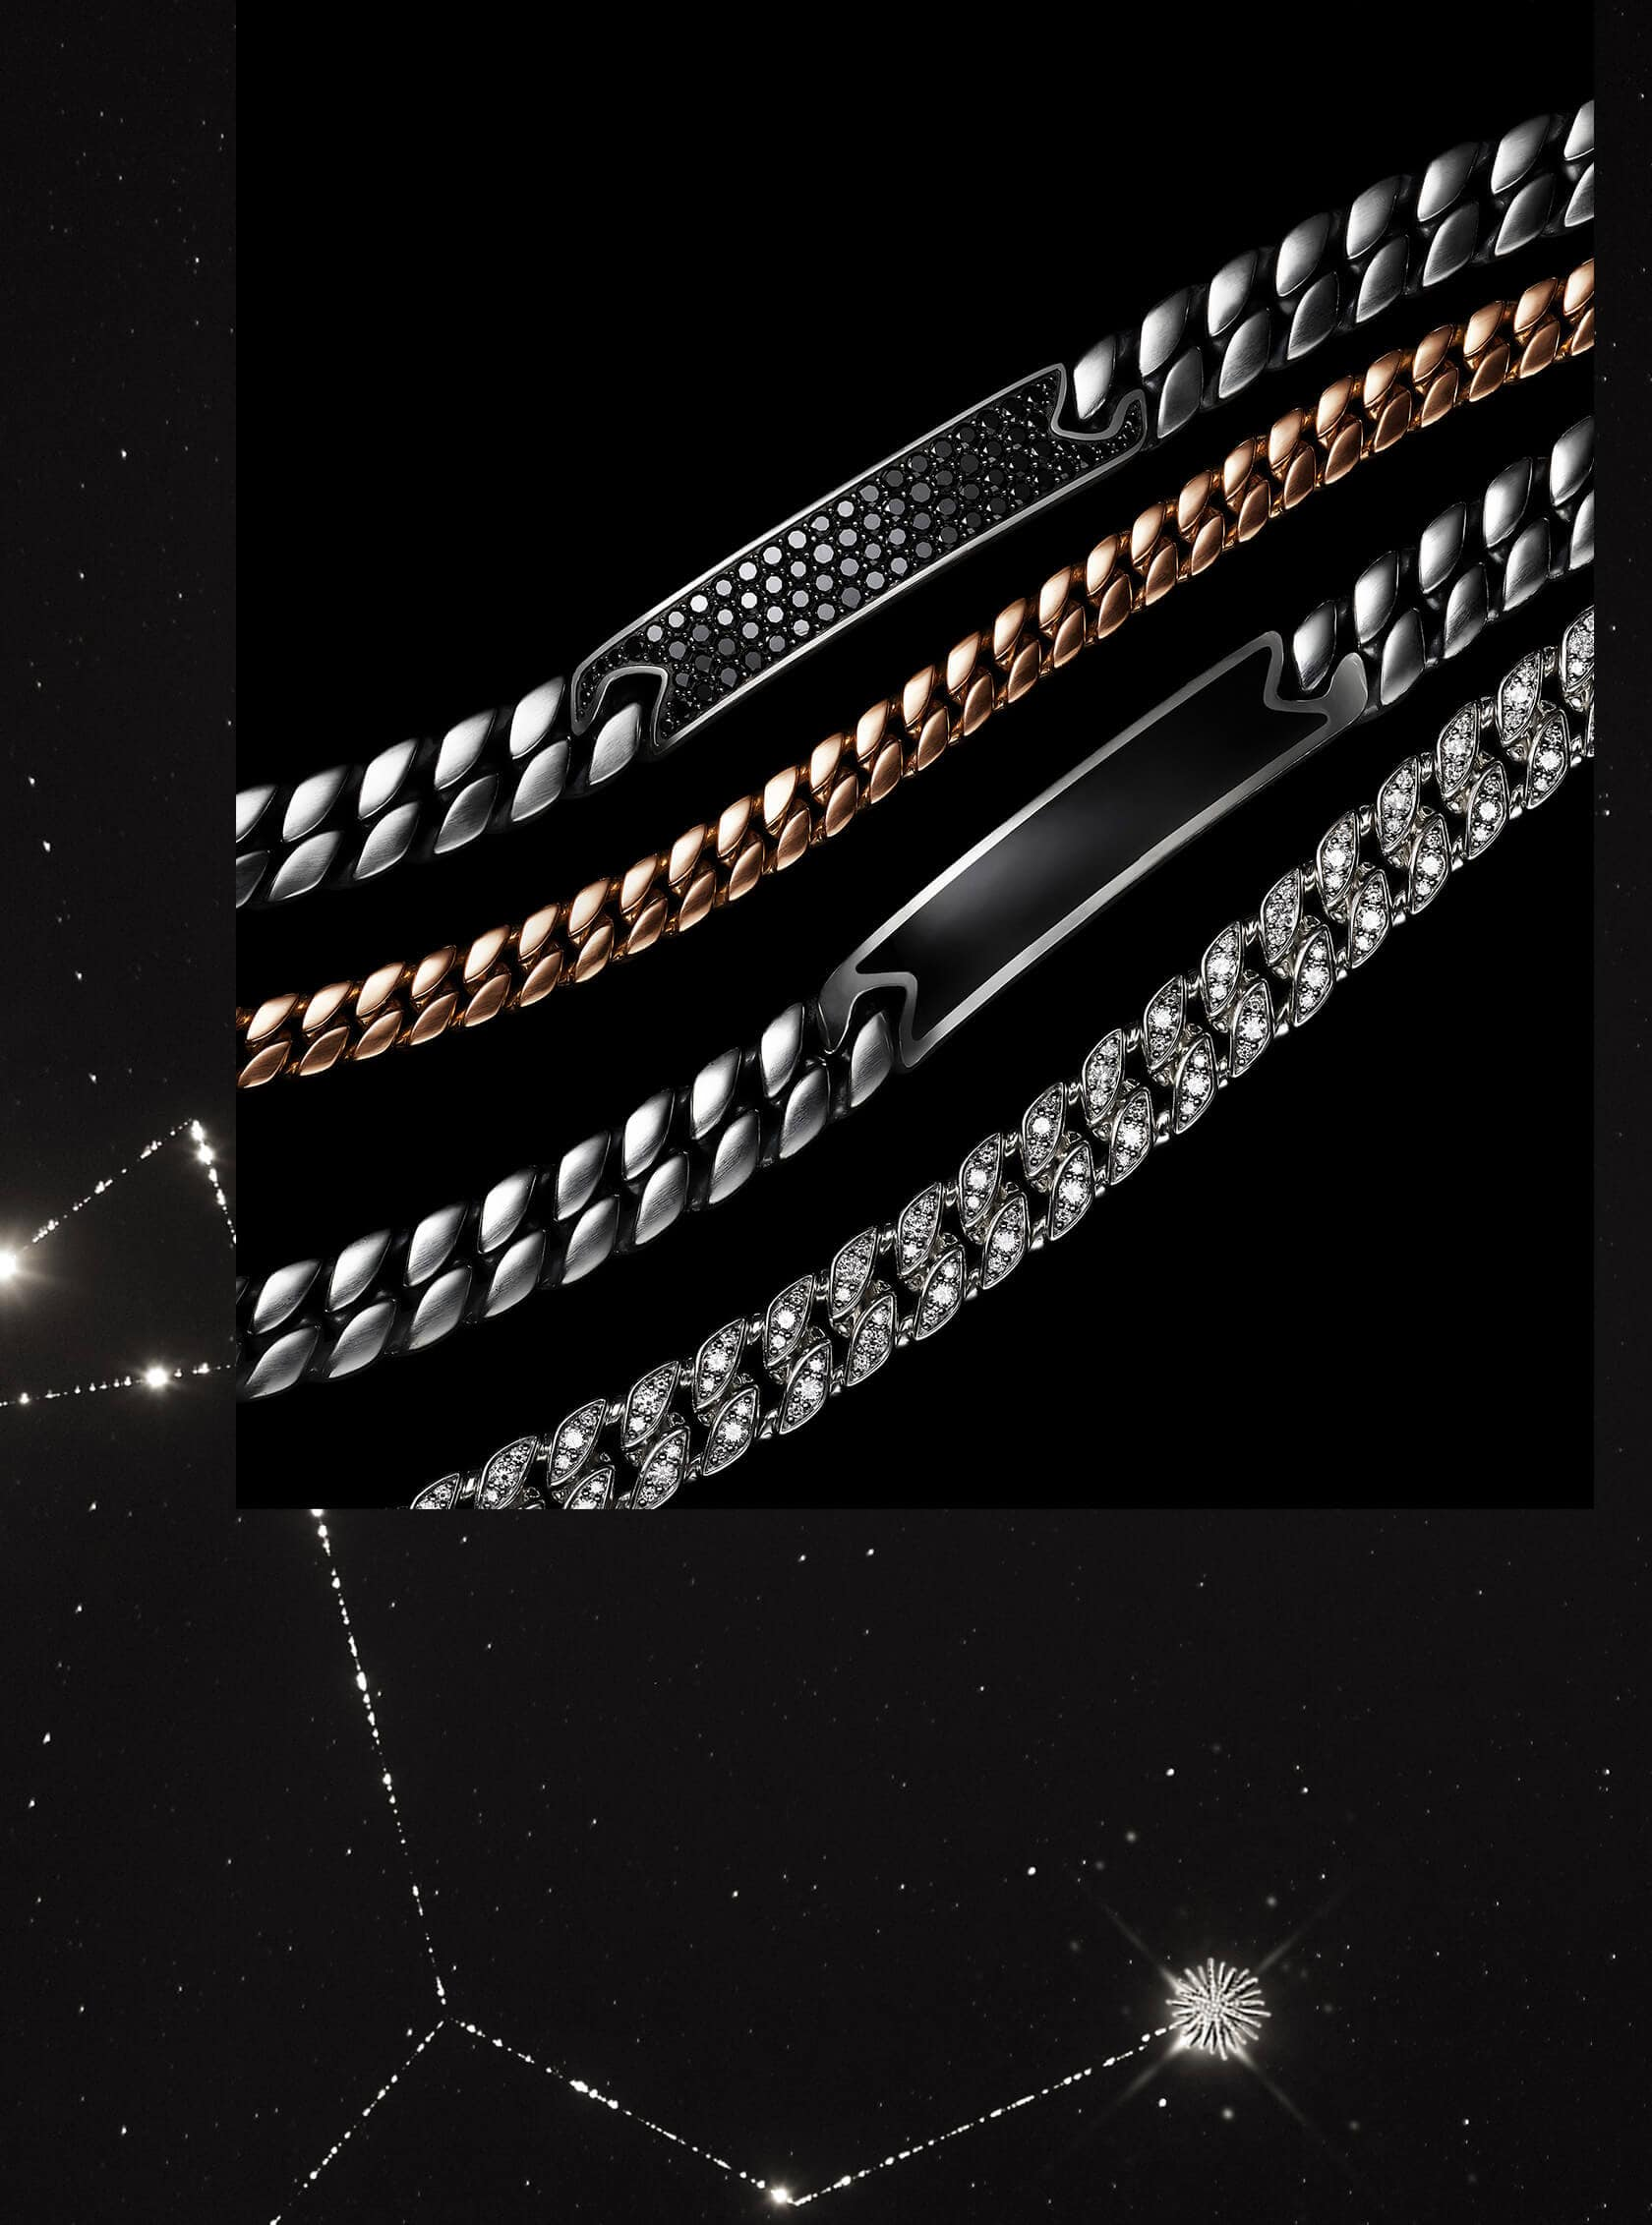 A color photo shows an overhead shot of four David Yurman men's chain and ID bracelets from the Pavé, Chain and Exotic Stone collections placed in a row on a black background. The jewelry is crafted from sterling silver with black diamonds or onyx, 18K rose gold or sterling silver encrusted with white diamonds.